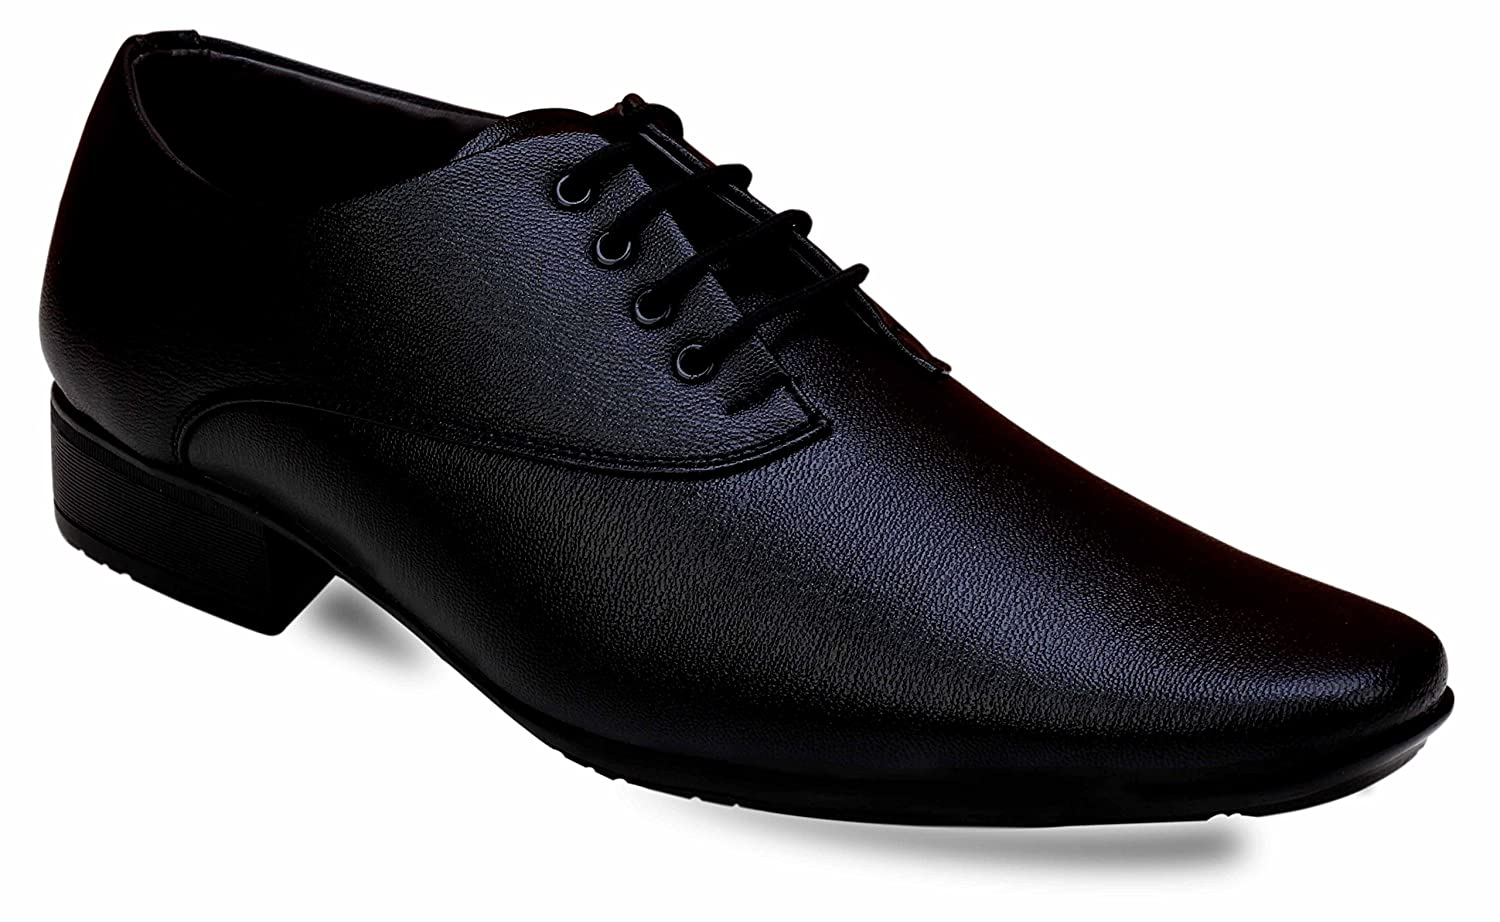 Buy Smoky Black Classic Formal Shoes